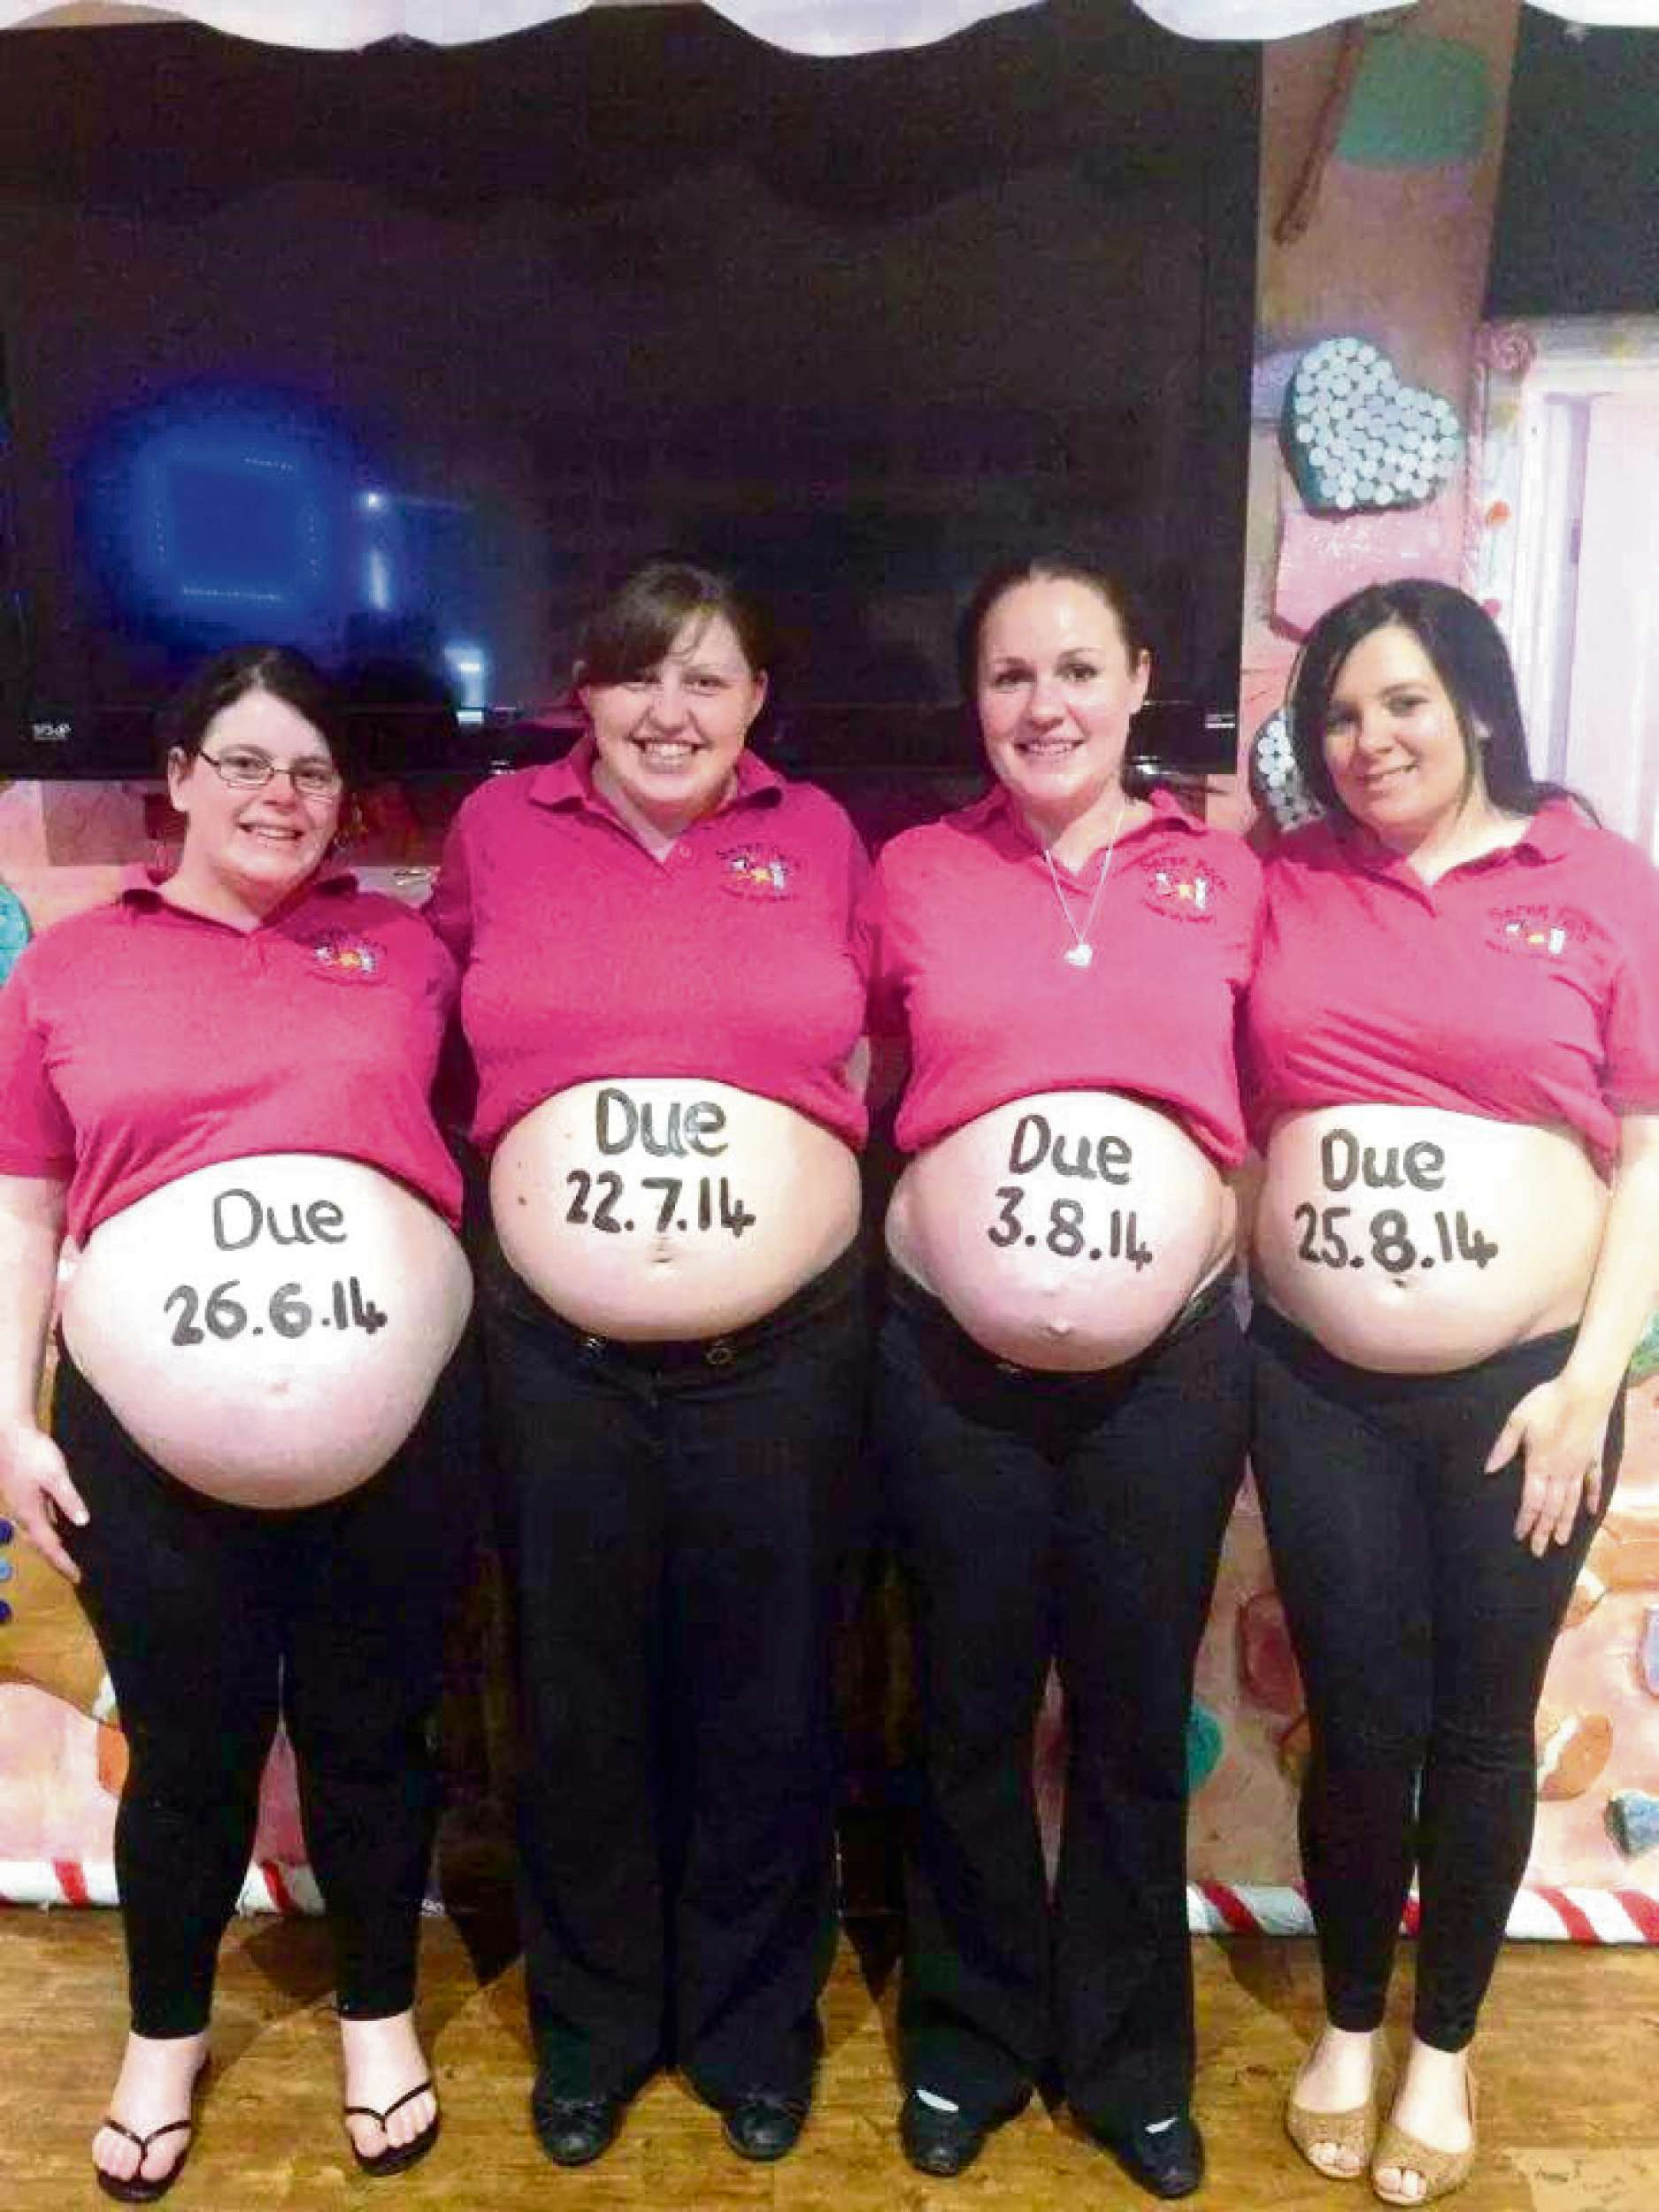 Four members of staff from Seren Fach Day Nursery in Ponthir are all expecting. Pictured (L-R) is Sadie Cook, 31, from Cwmbran; Kirsty Harris, 23, from Caerleon; Gemma Lewis, 29, from Newbridge; and Jessica Davies, 25, from Caerleon. (6641977)